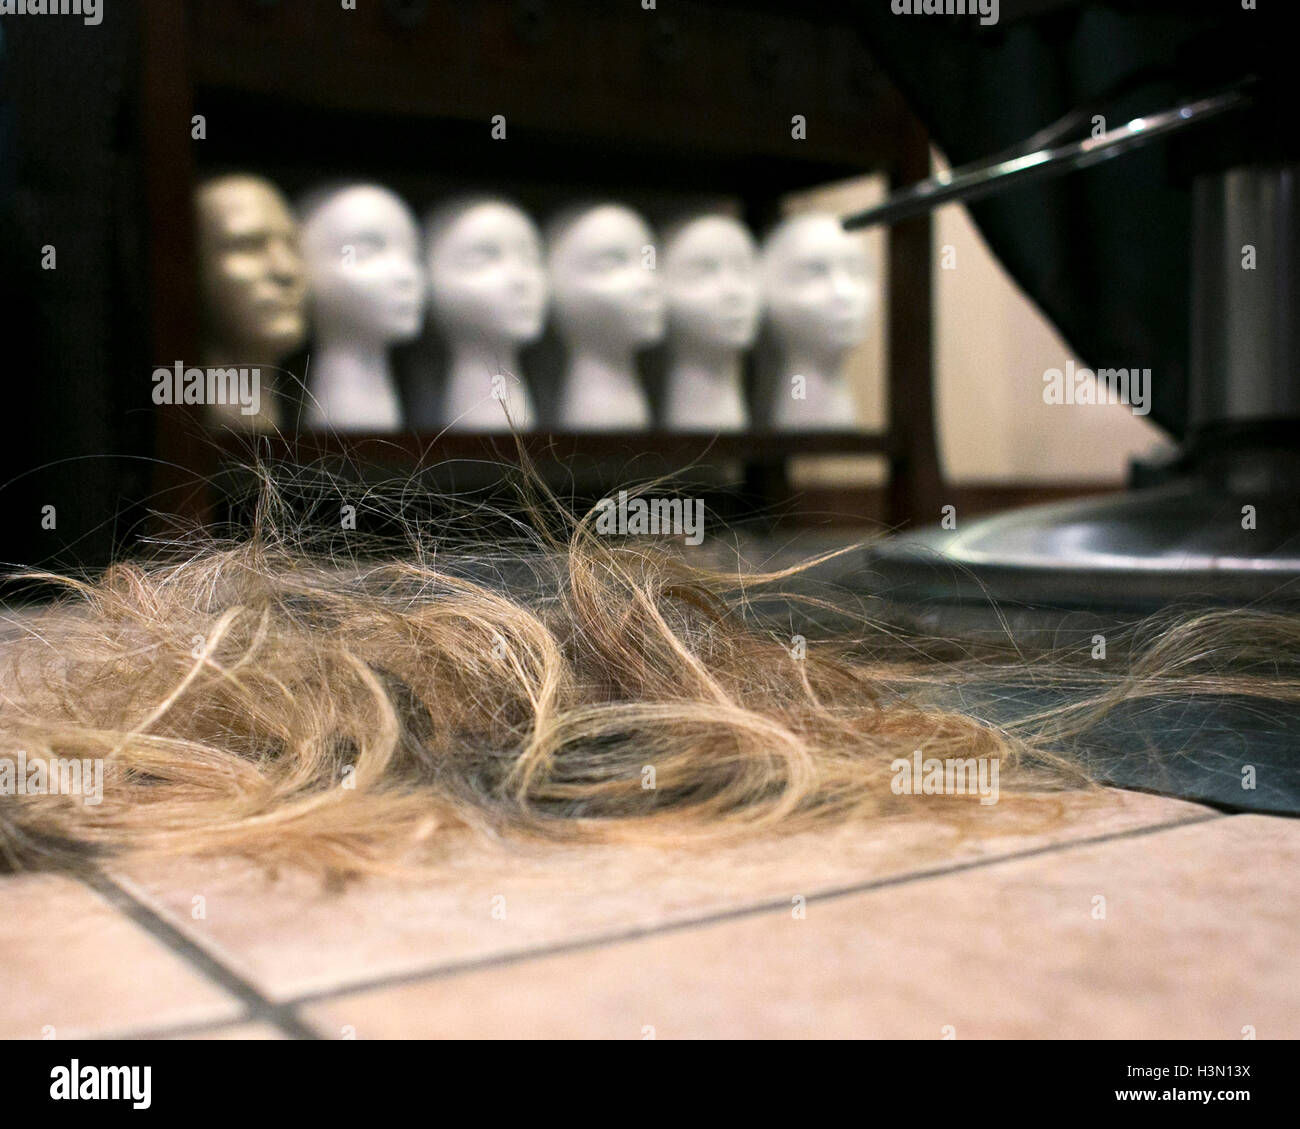 Hair clippings at a salon - Stock Image